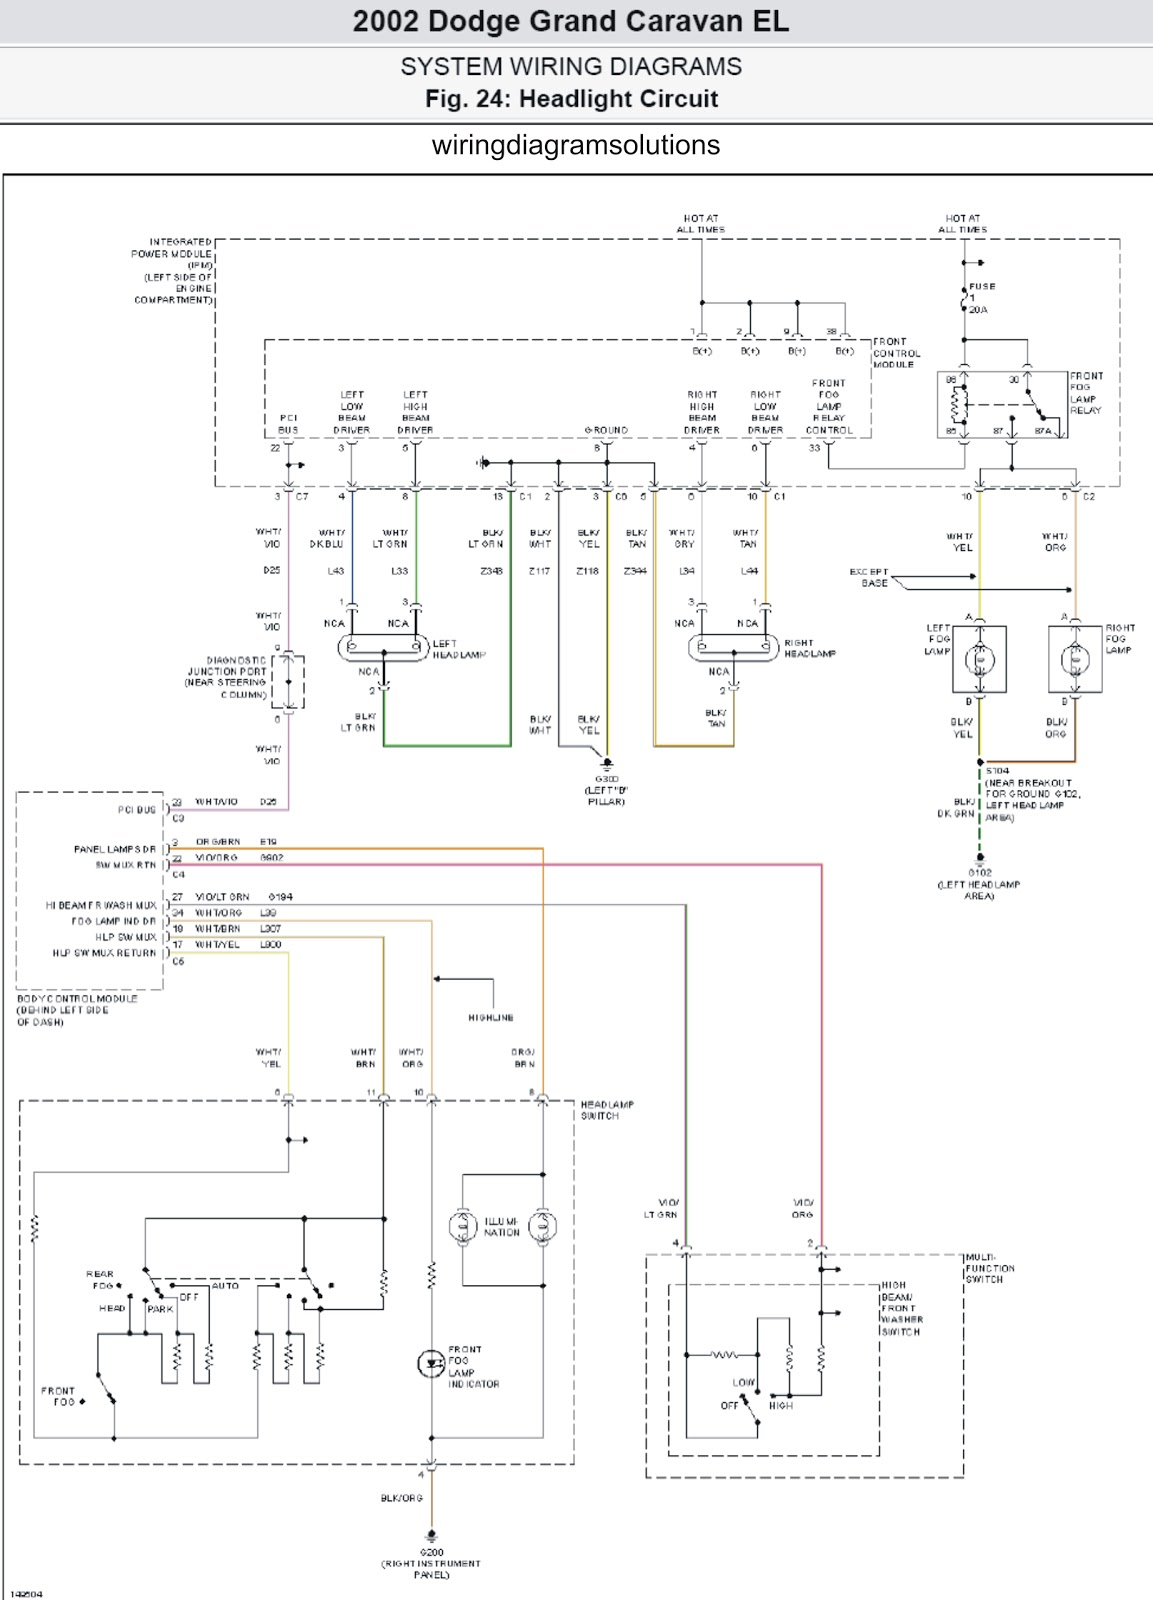 headlight wiring diagram for 2005 dodge ram wiring diagram2005 dodge caravan wiring diagram wiring diagram bestwiring diagram 2005 dodge grand caravan schema wiring diagrams